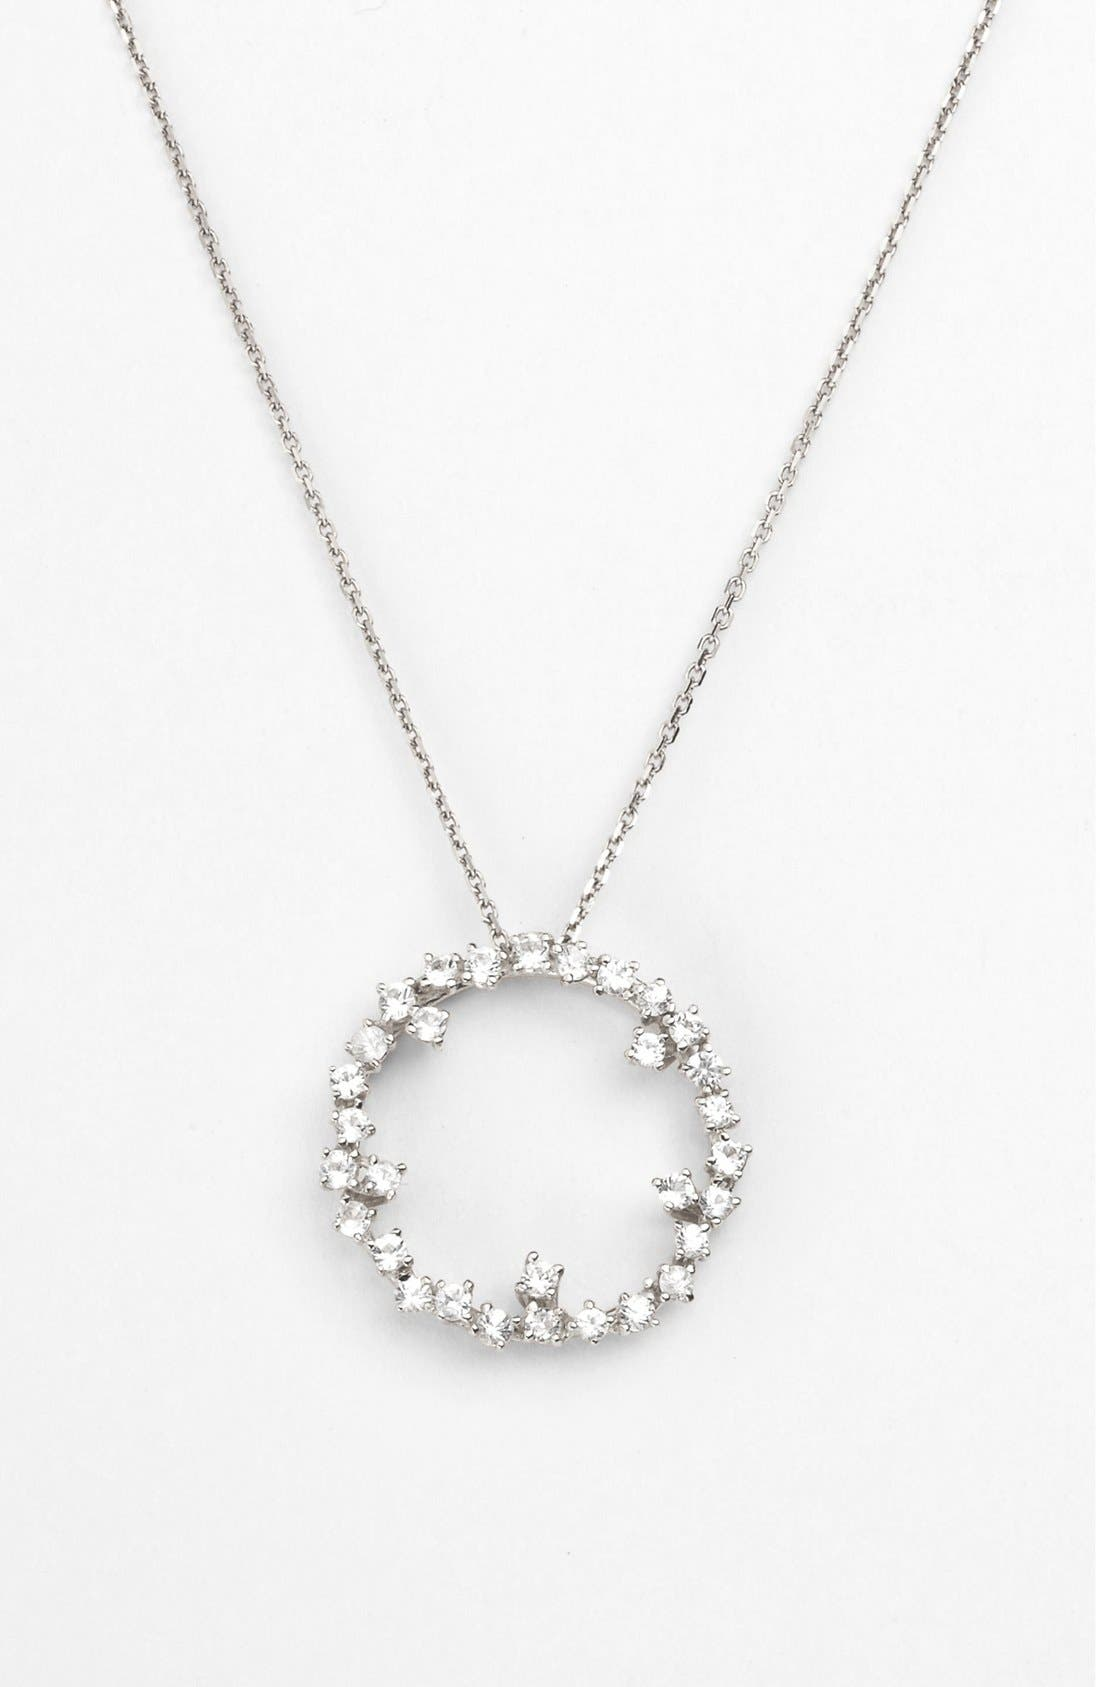 Main Image - KALAN by Suzanne Kalan 'Mini Starburst' Pendant Necklace